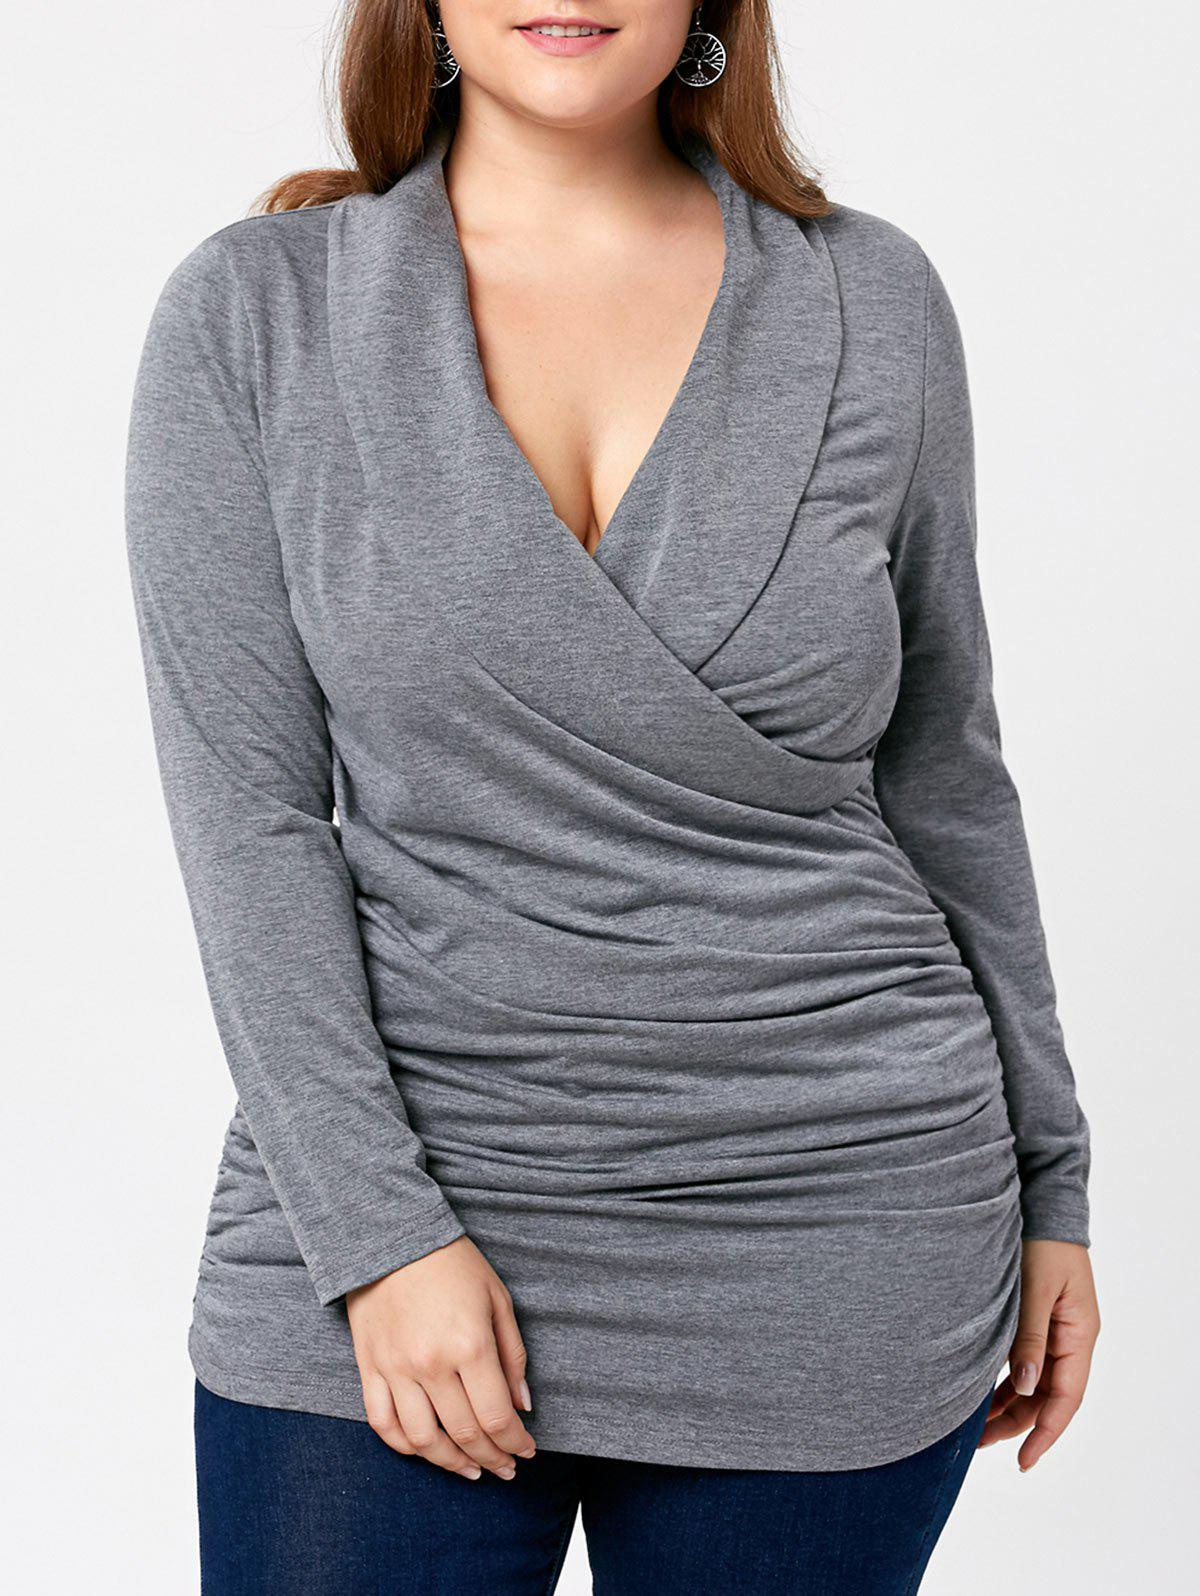 Plus Size Plunging Neck Surplice Ruched TopWOMEN<br><br>Size: 5XL; Color: GRAY; Material: Cotton,Polyester; Shirt Length: Long; Sleeve Length: Full; Collar: Plunging Neck; Style: Casual; Season: Fall,Spring; Embellishment: Ruched; Pattern Type: Solid; Weight: 0.4000kg; Package Contents: 1 x T-shirt;